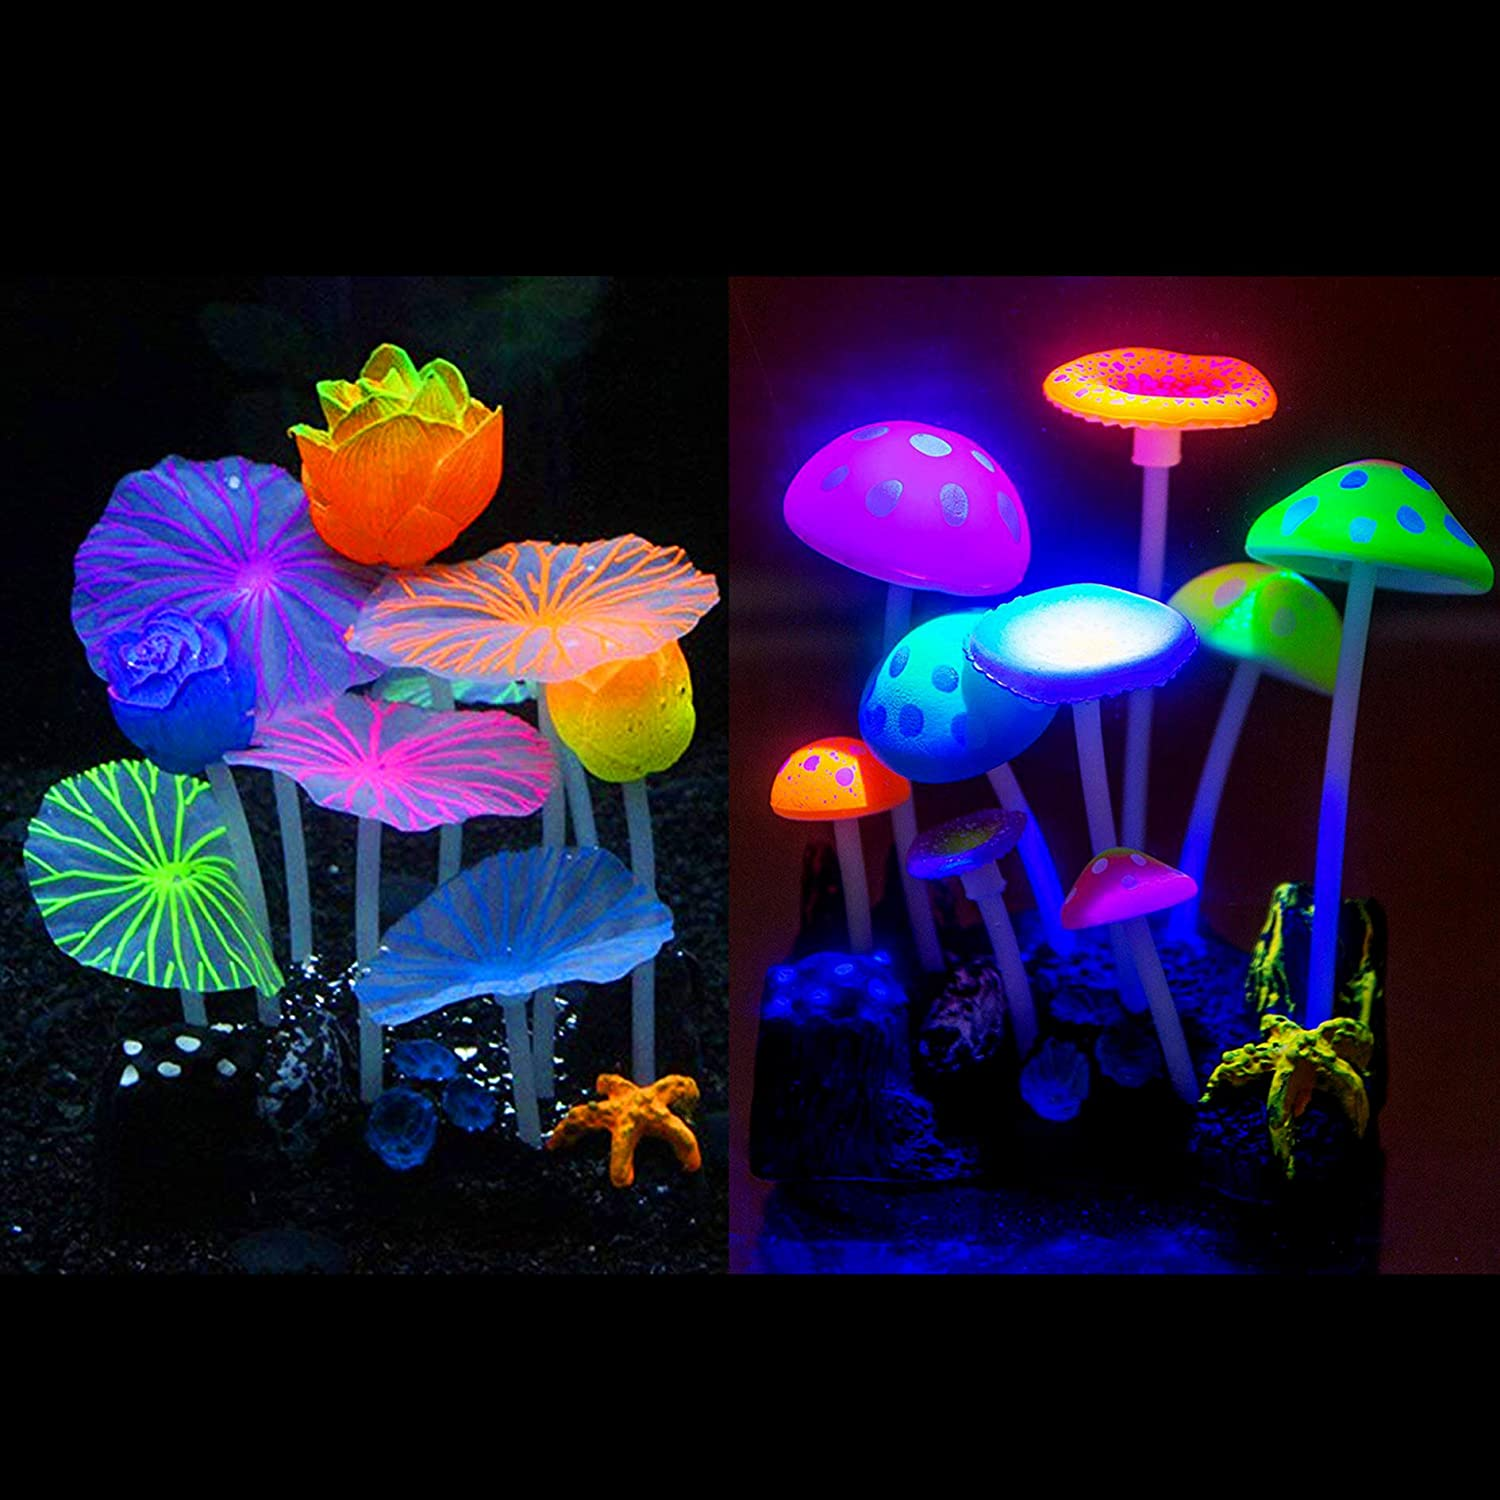 Aquarium Decorations, Fish Tank Simulation Coral Plant Decorations Glowing Silicone Accessories 2pack